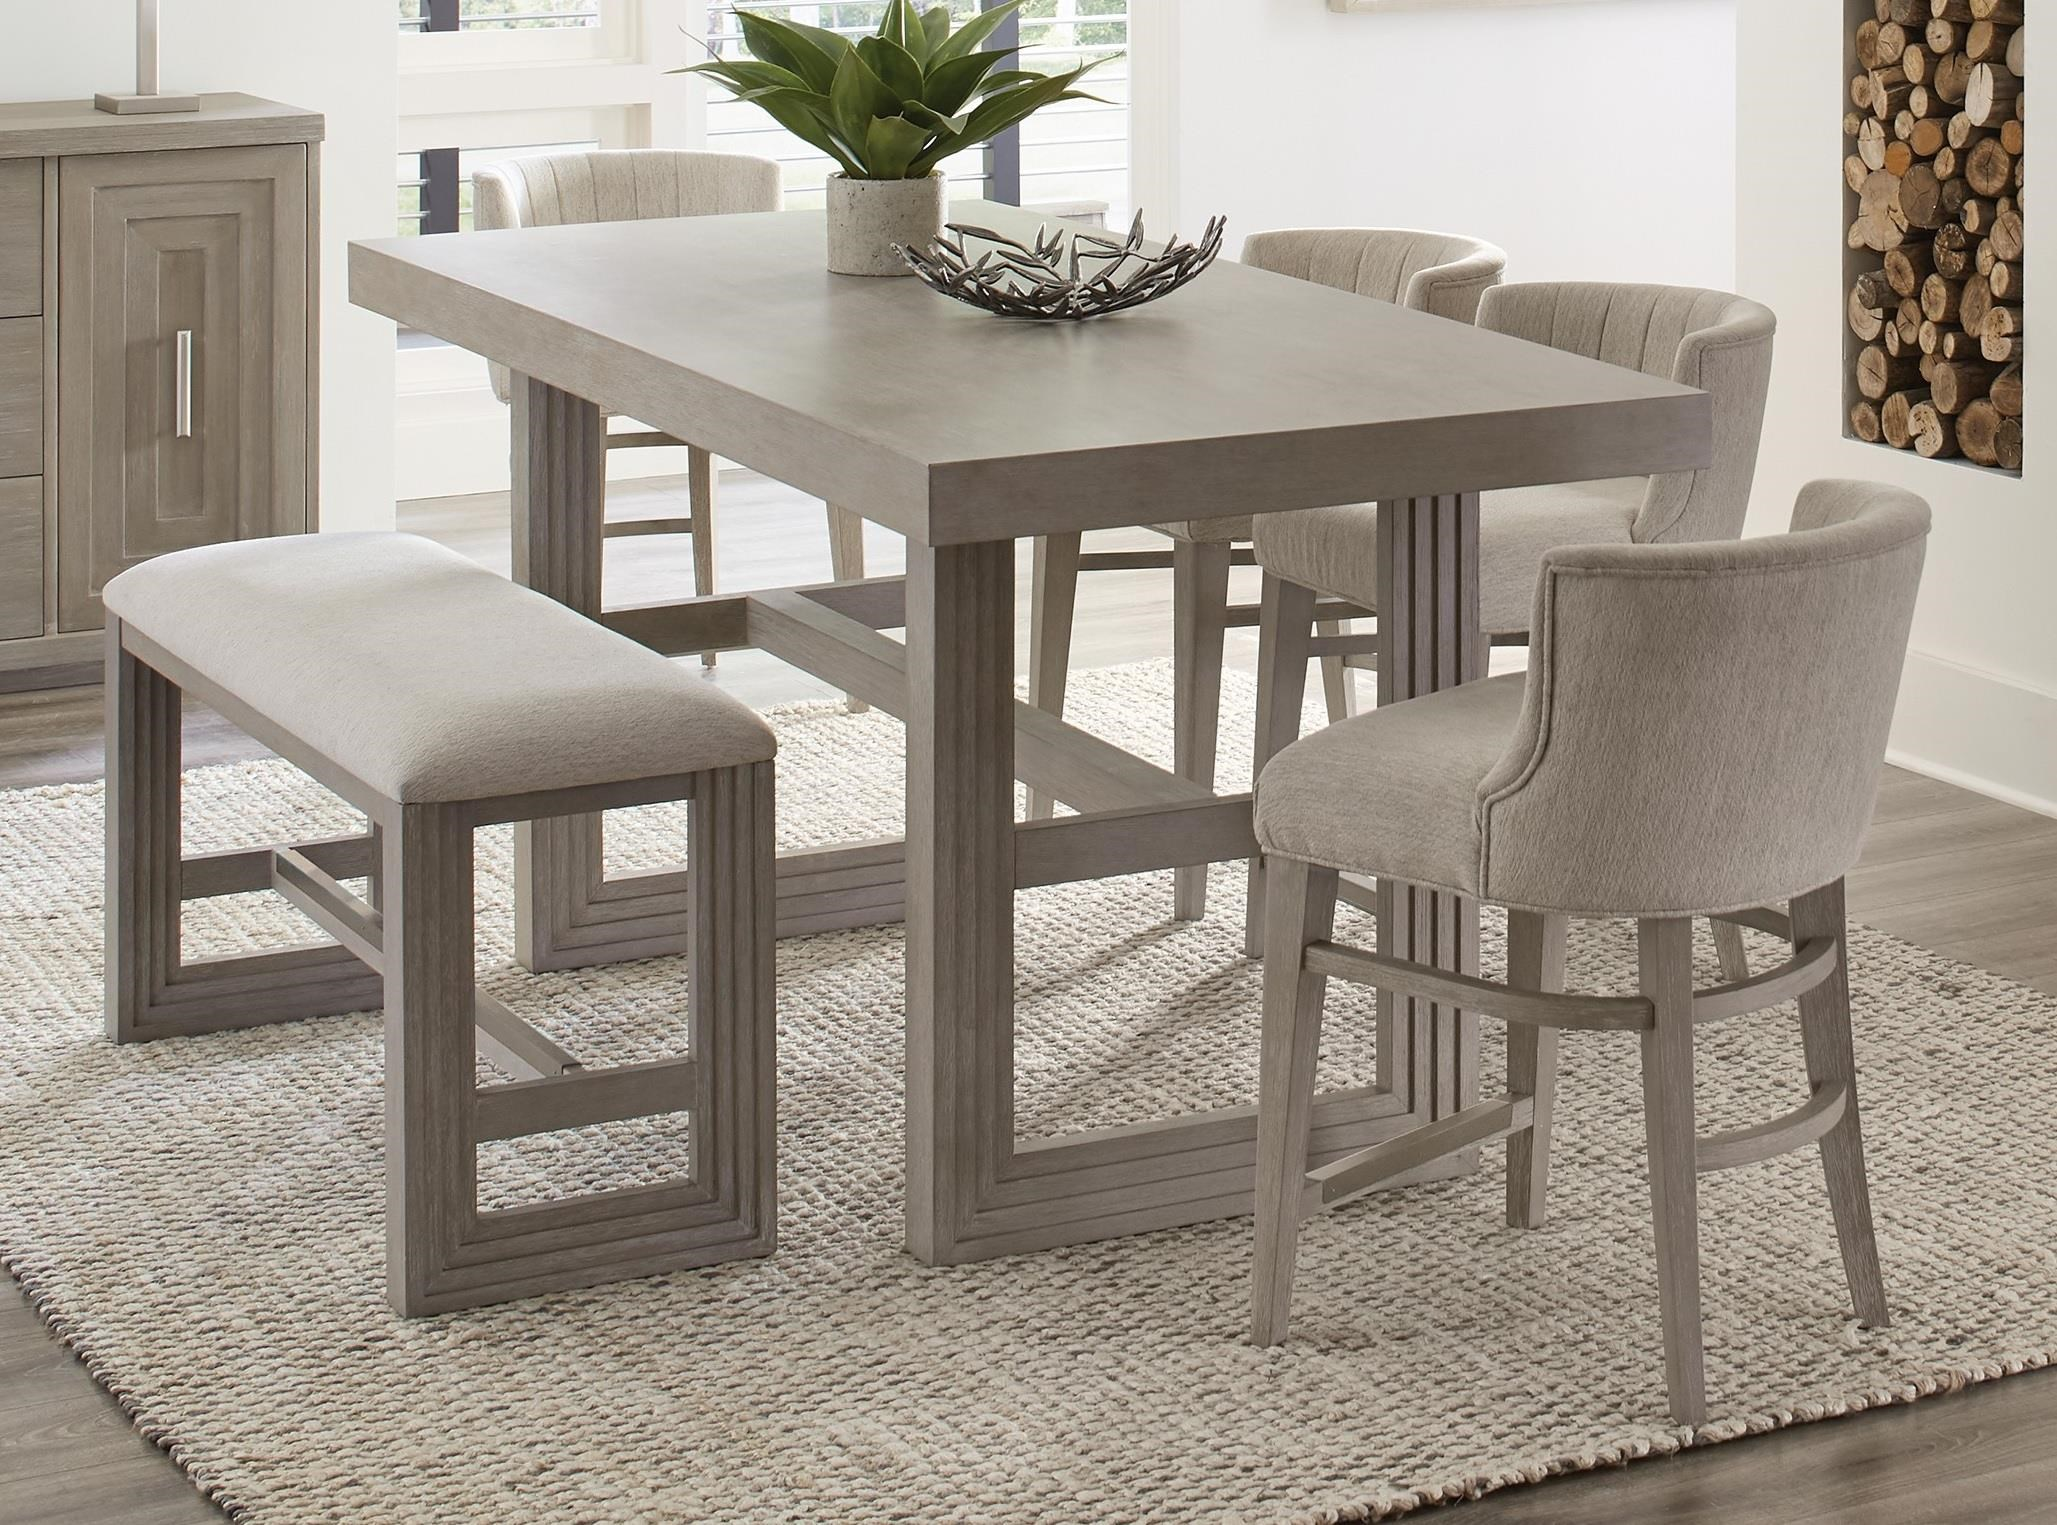 Cassandra  Cassandra Dining Set by Riverside Furniture at Morris Home